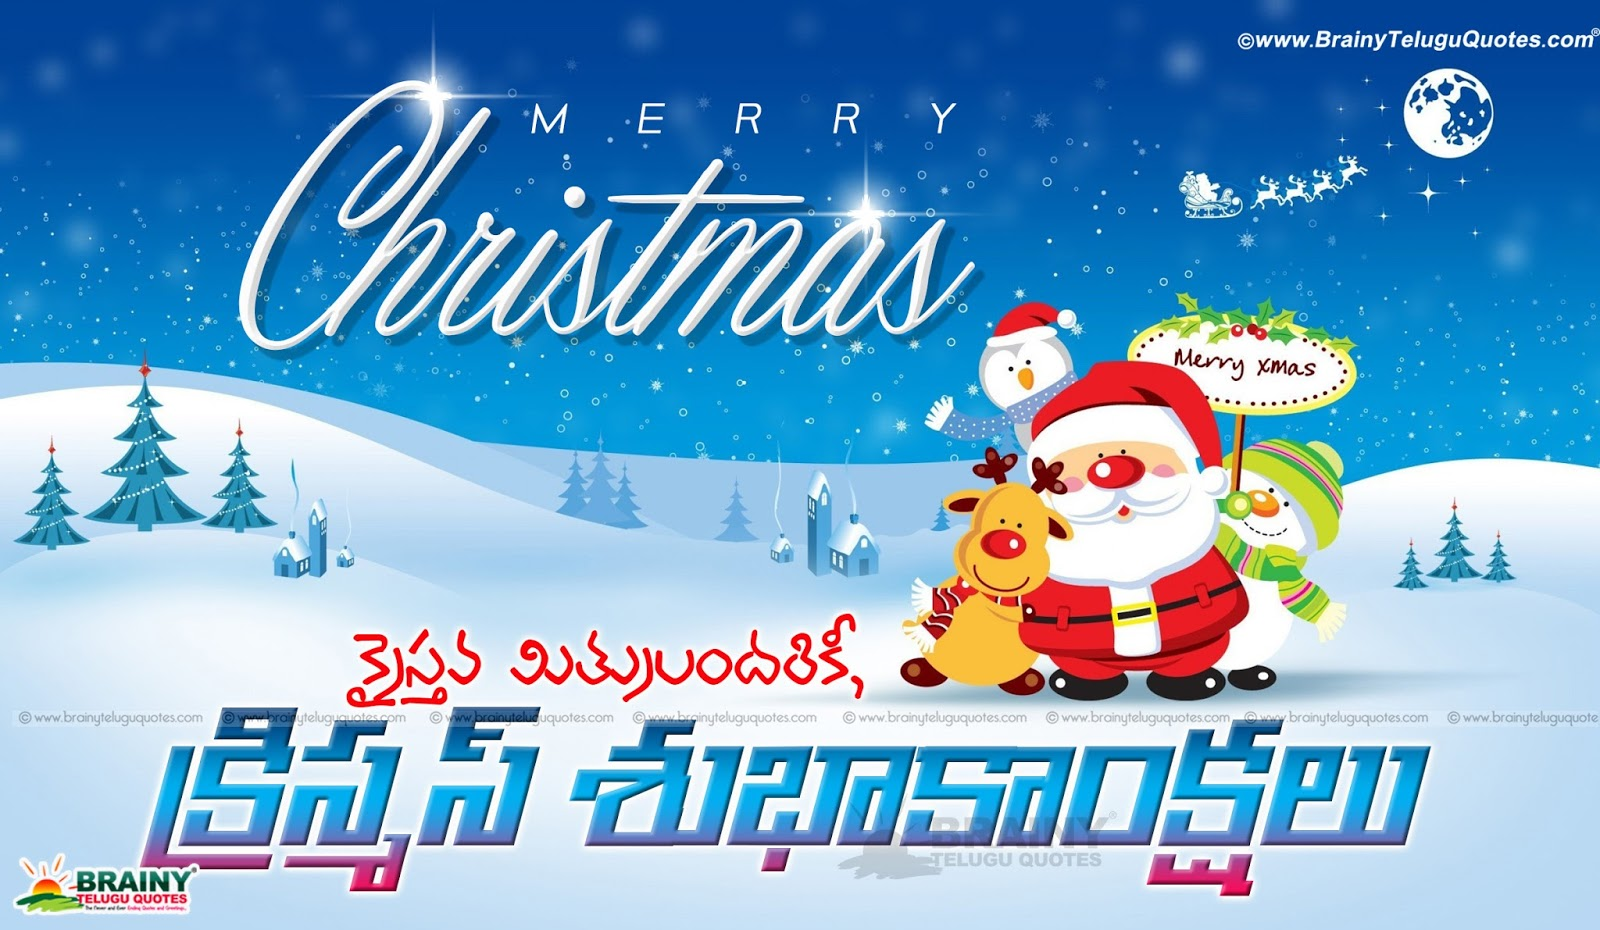 Telugu Merry Christmas Cards wishes greetings hd wallpapers   BrainyTeluguQuotes.comTelugu ...